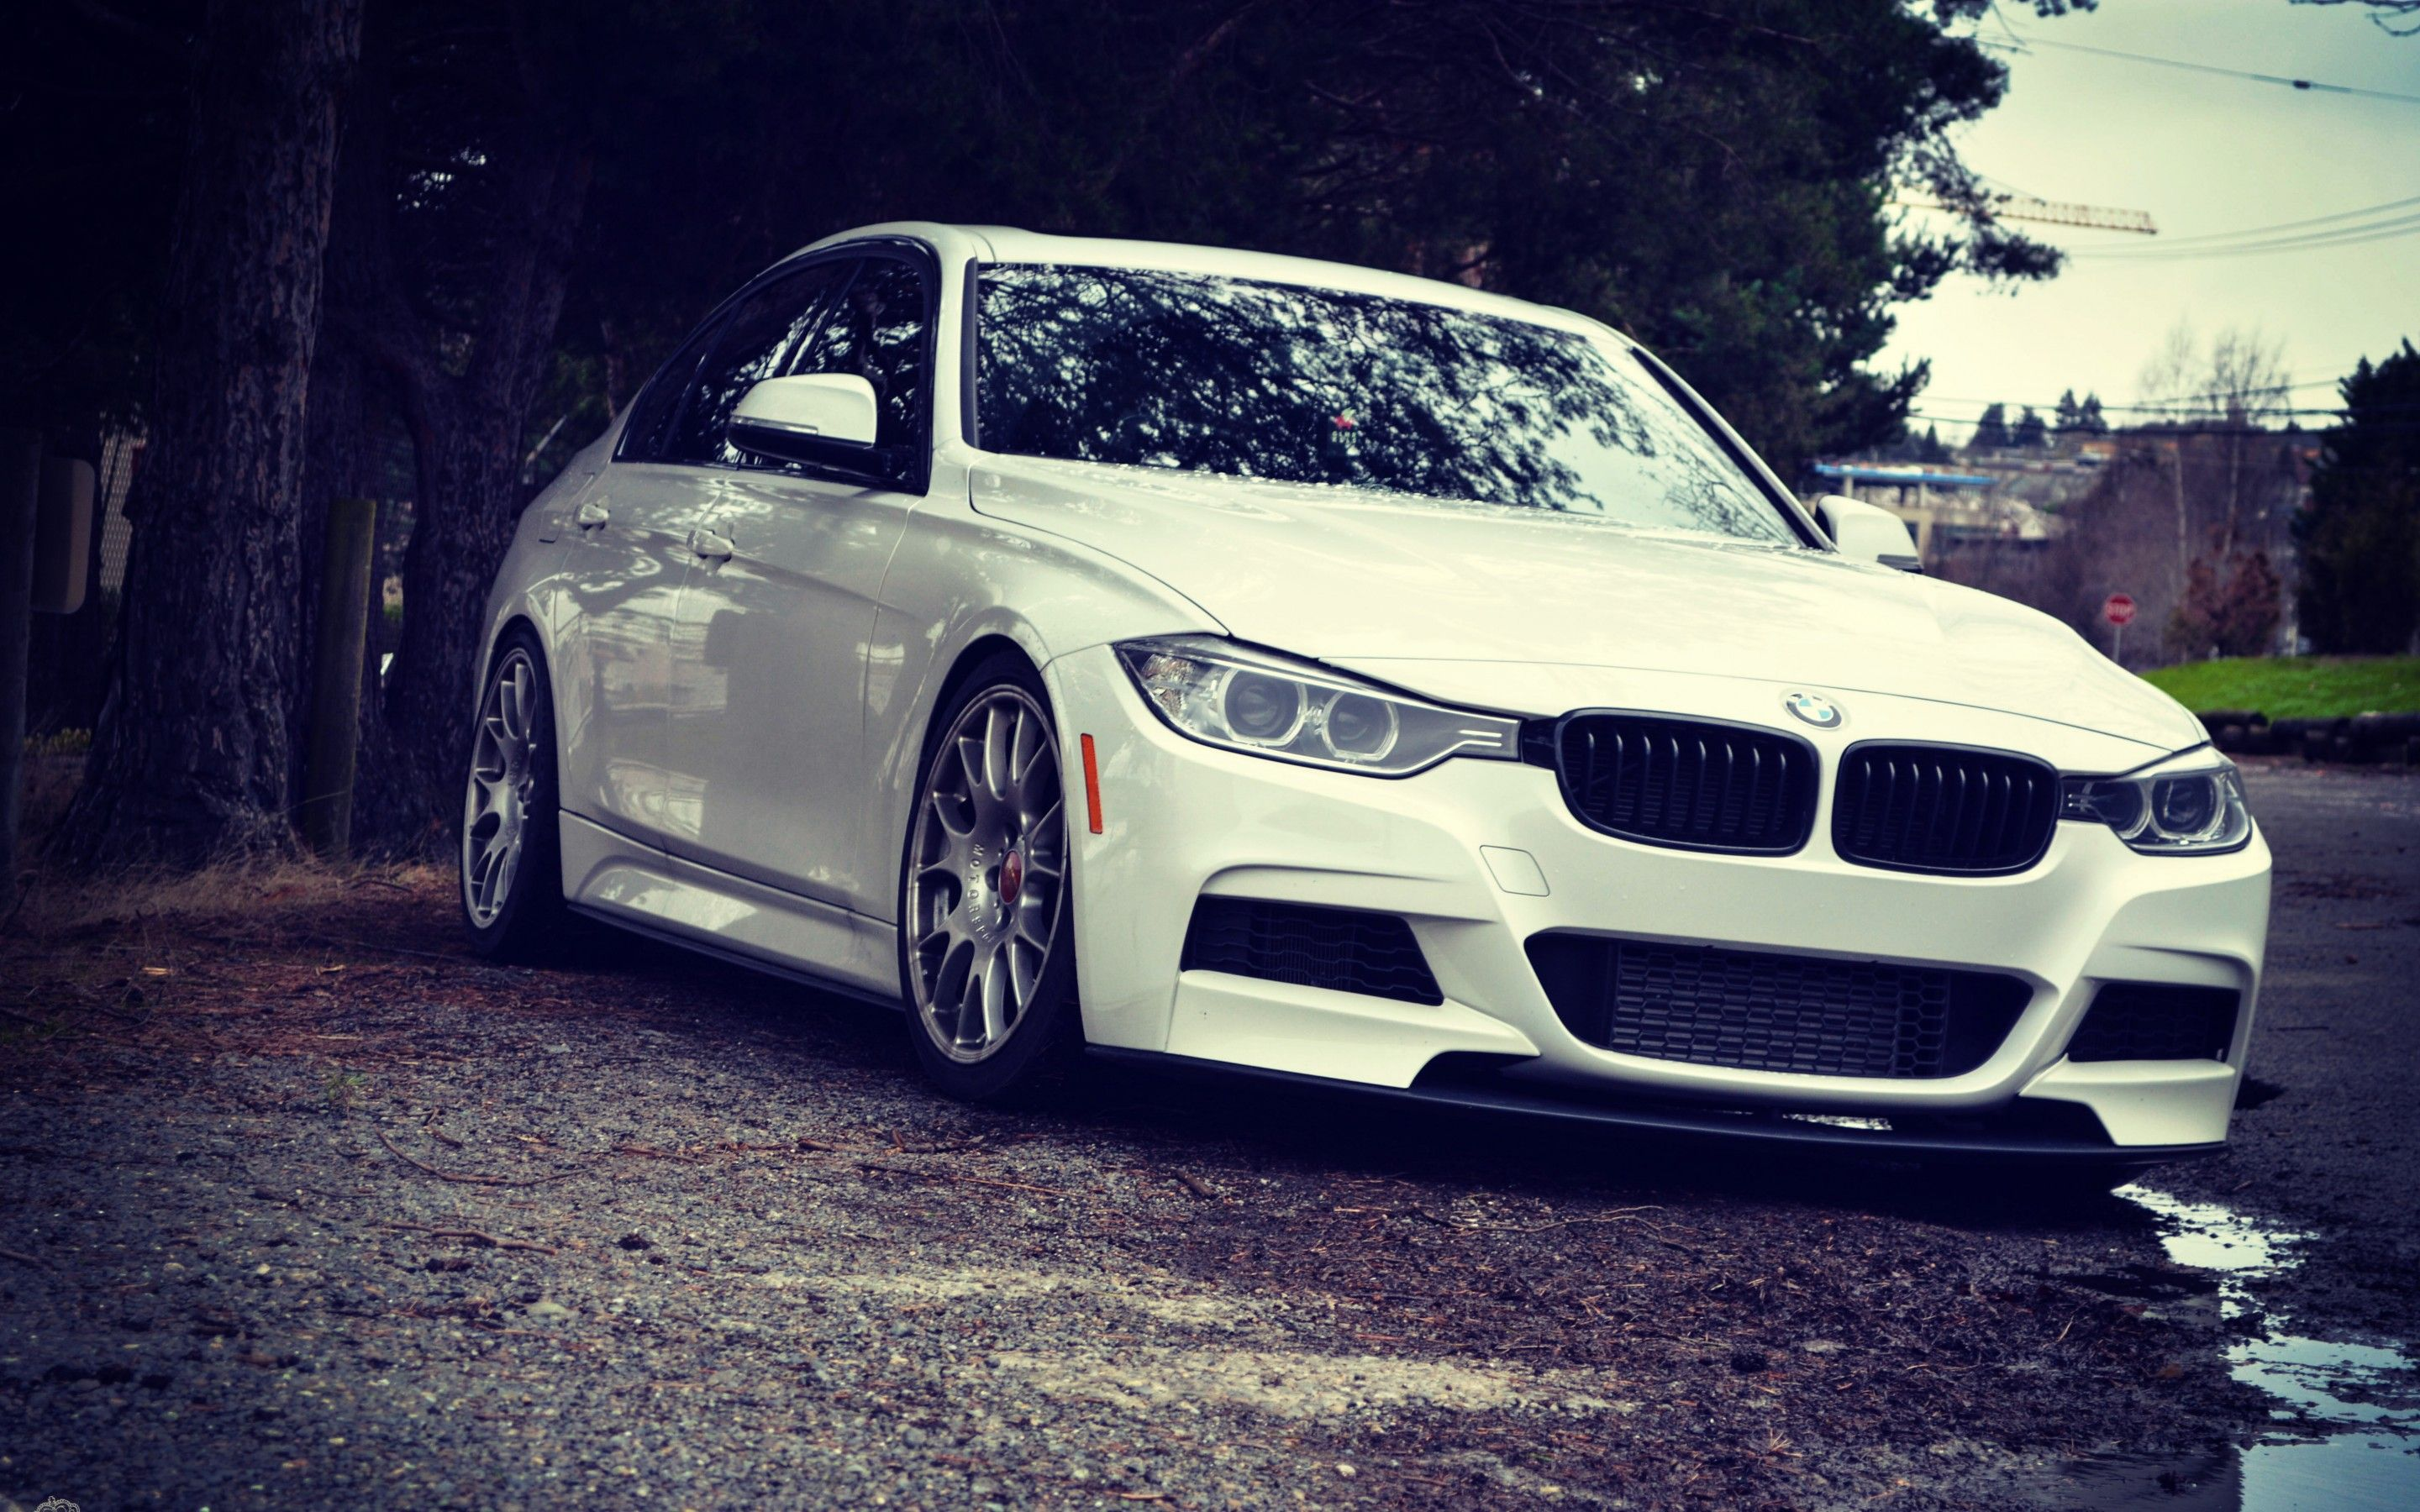 BMW F30 Wallpapers   Top BMW F30 Backgrounds   WallpaperAccess 2880x1800